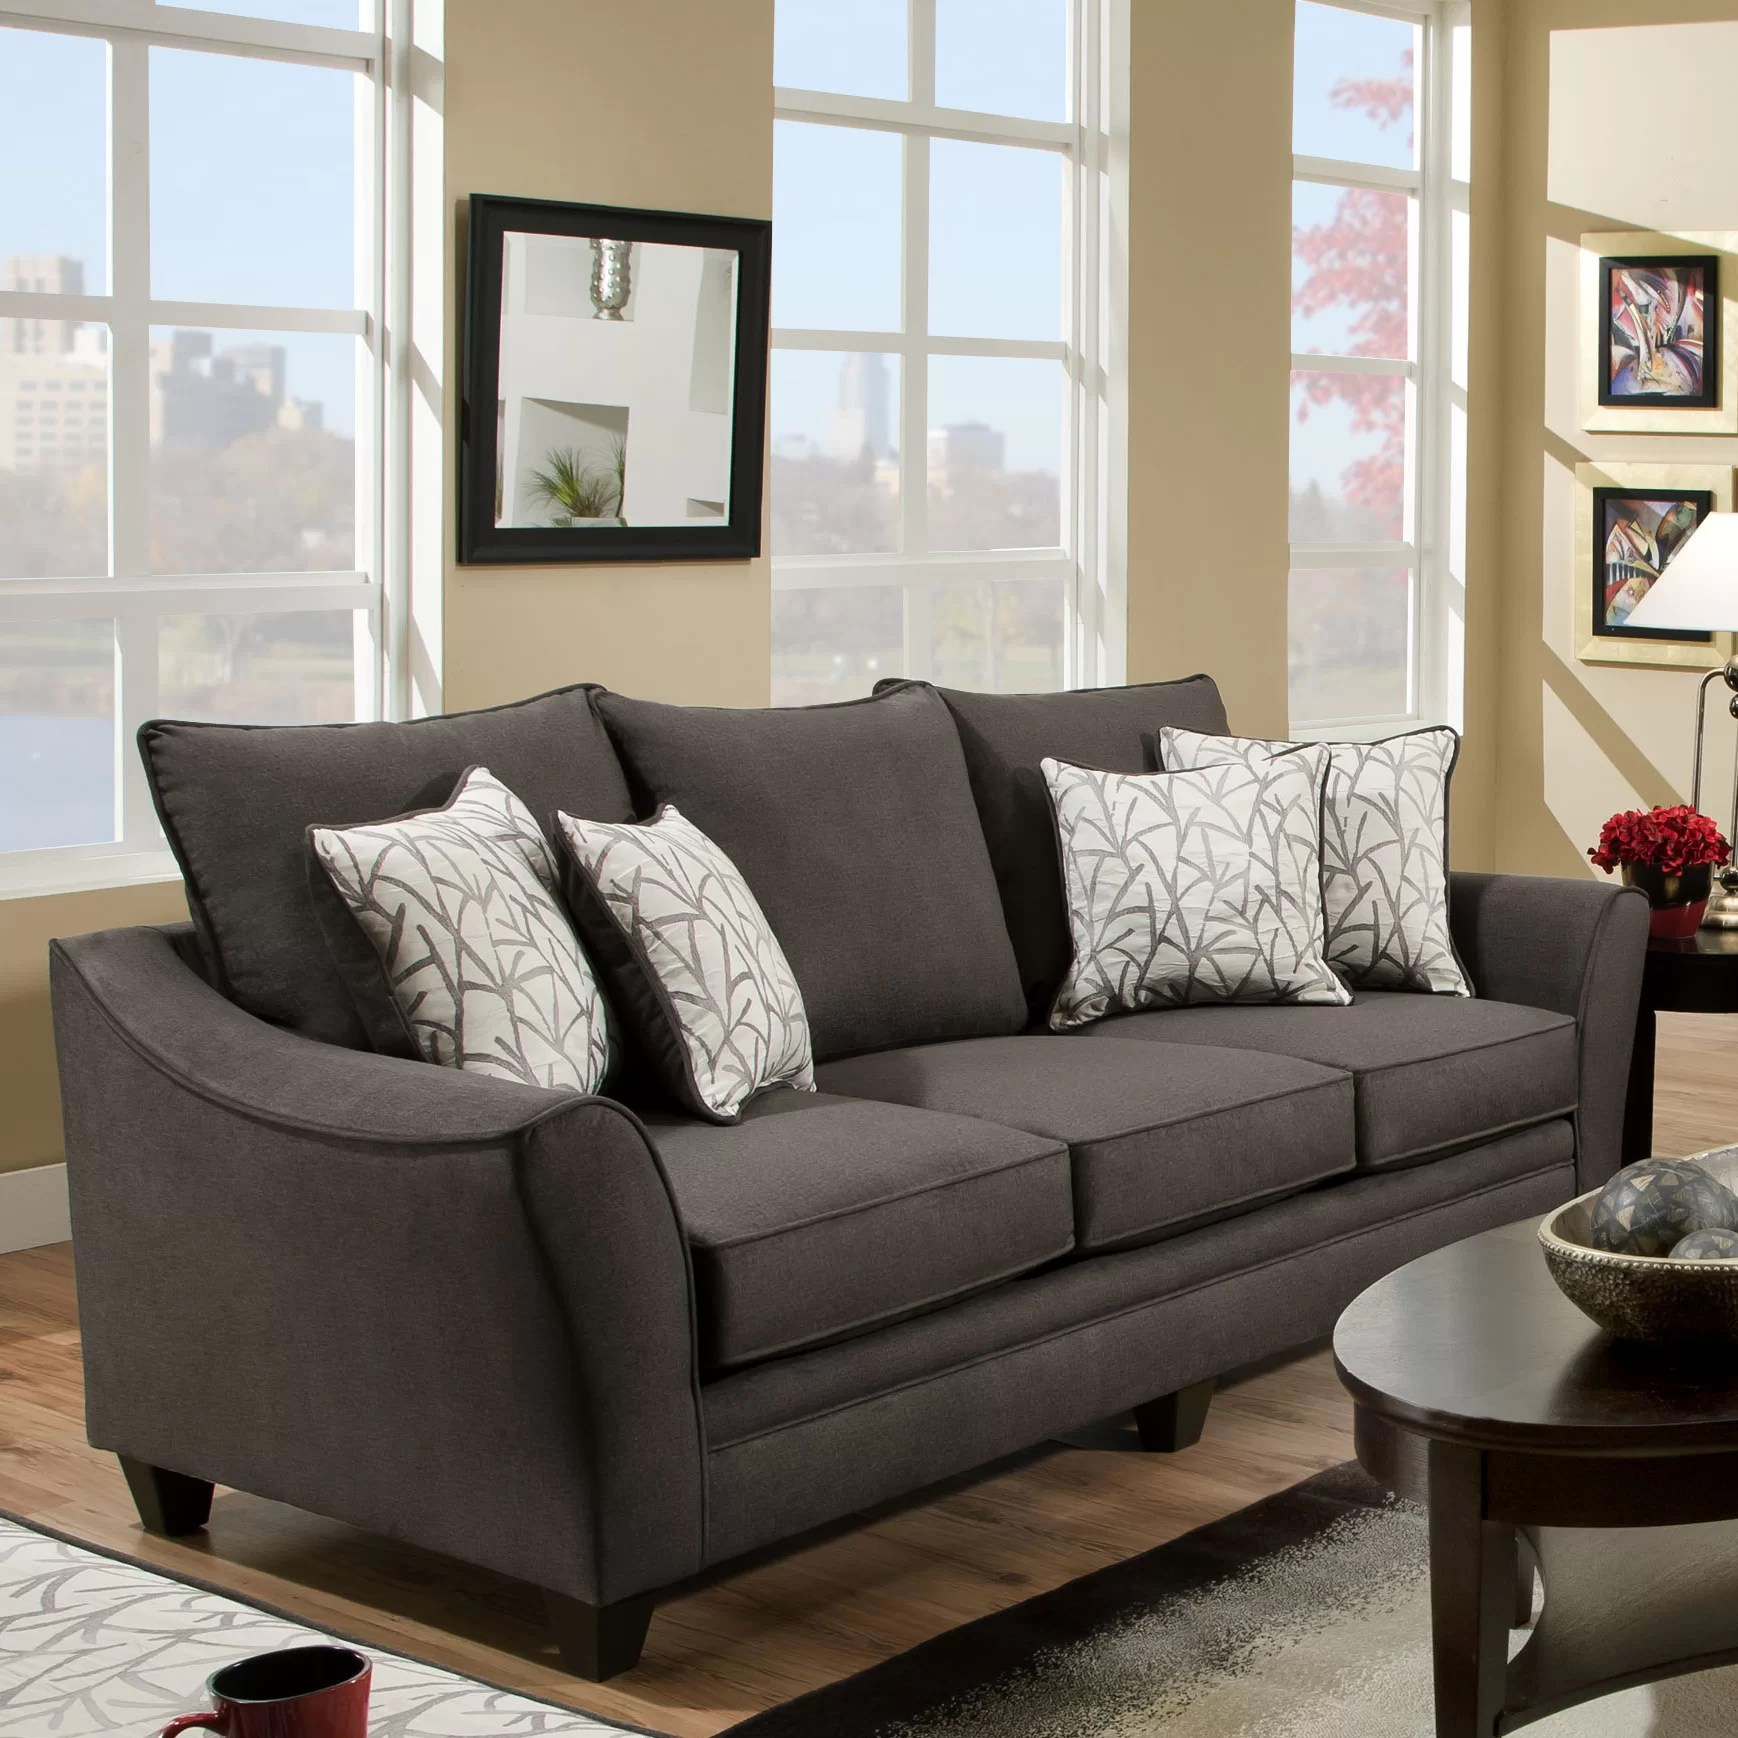 room and board chelsea sofa set small living home flannel reviews wayfair